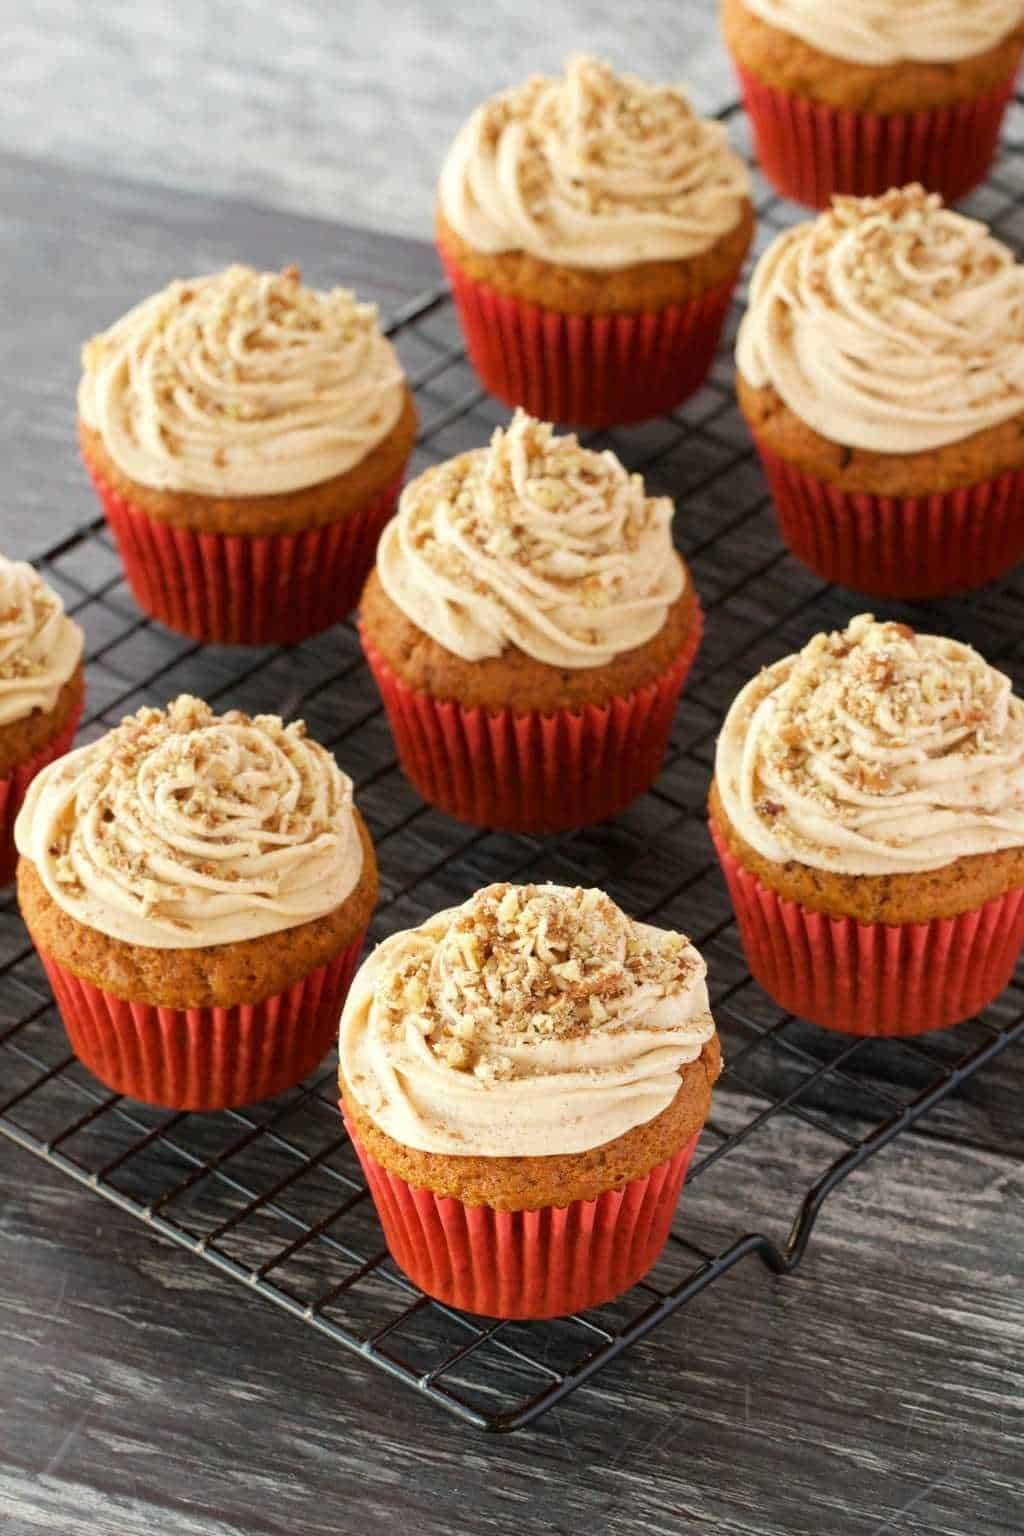 Rich Moist And Tall Vegan Pumpkin Cupcakes Topped With A Velvety Pumpkin Spice Frosting And Crushed Pecans B Spice Frosting Vegan Lemon Cake Vegan Fruit Cake